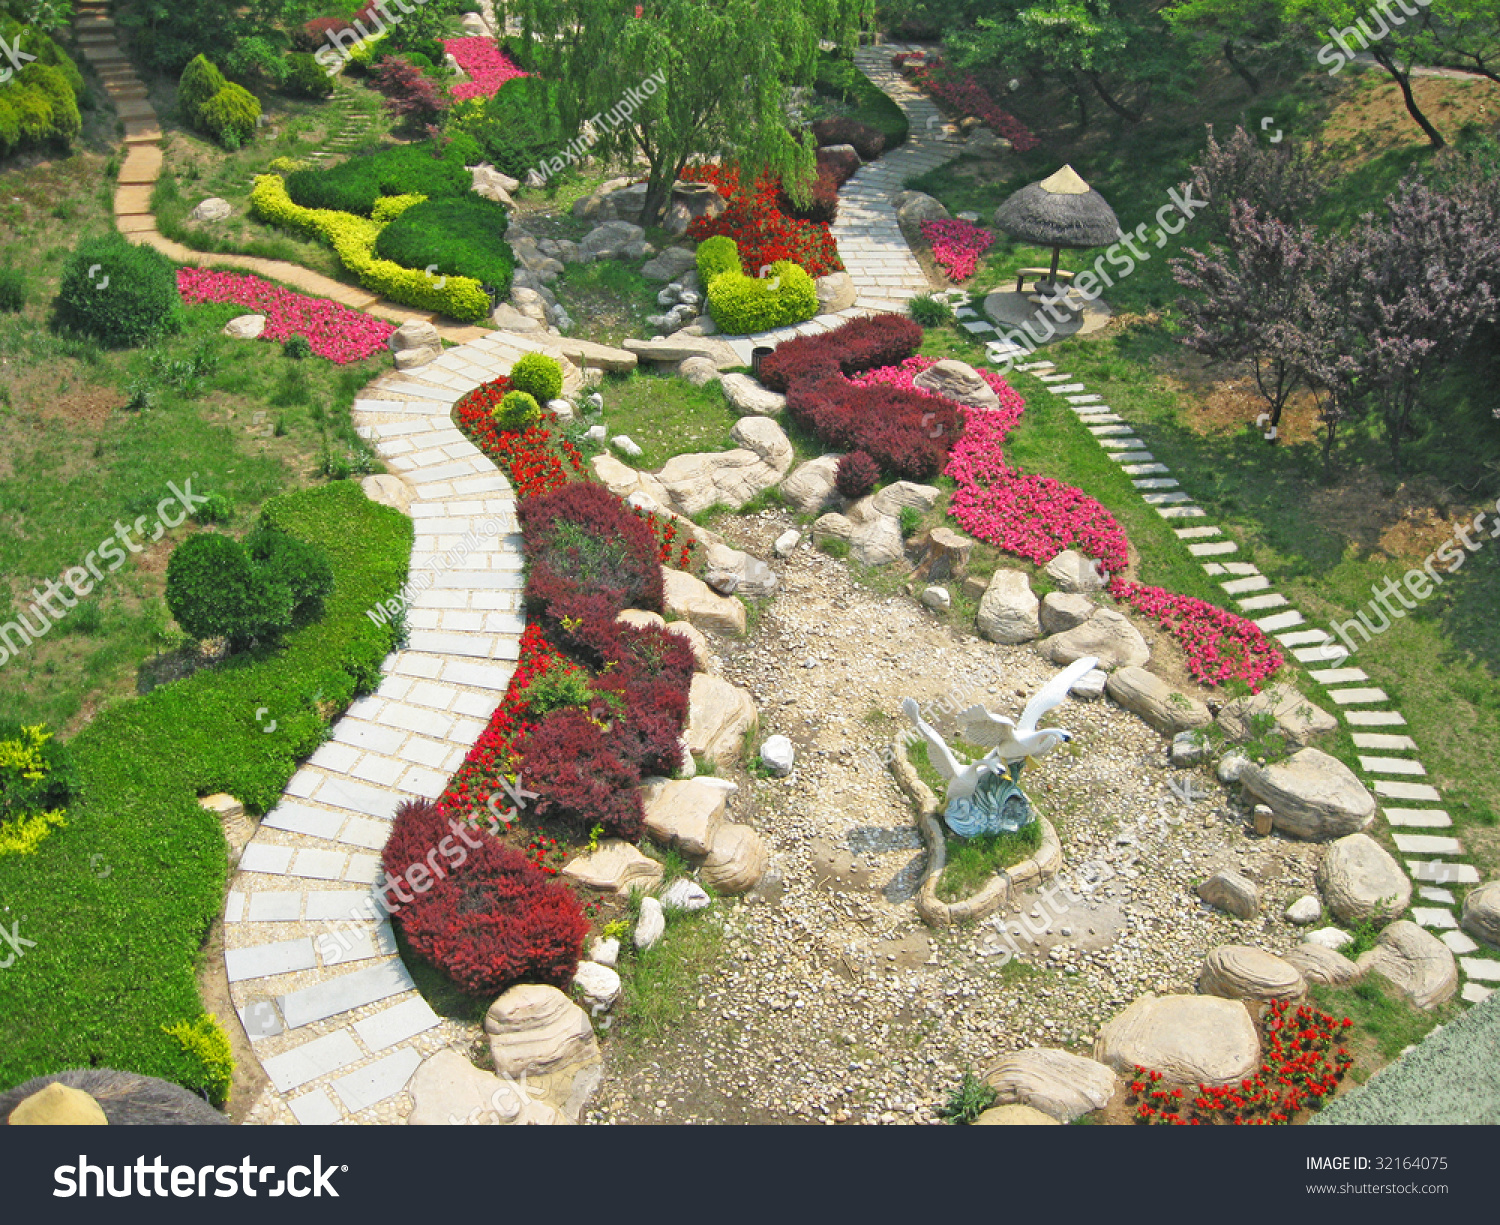 landscape outdoor garden design at dalian zoo china preview save to a lightbox